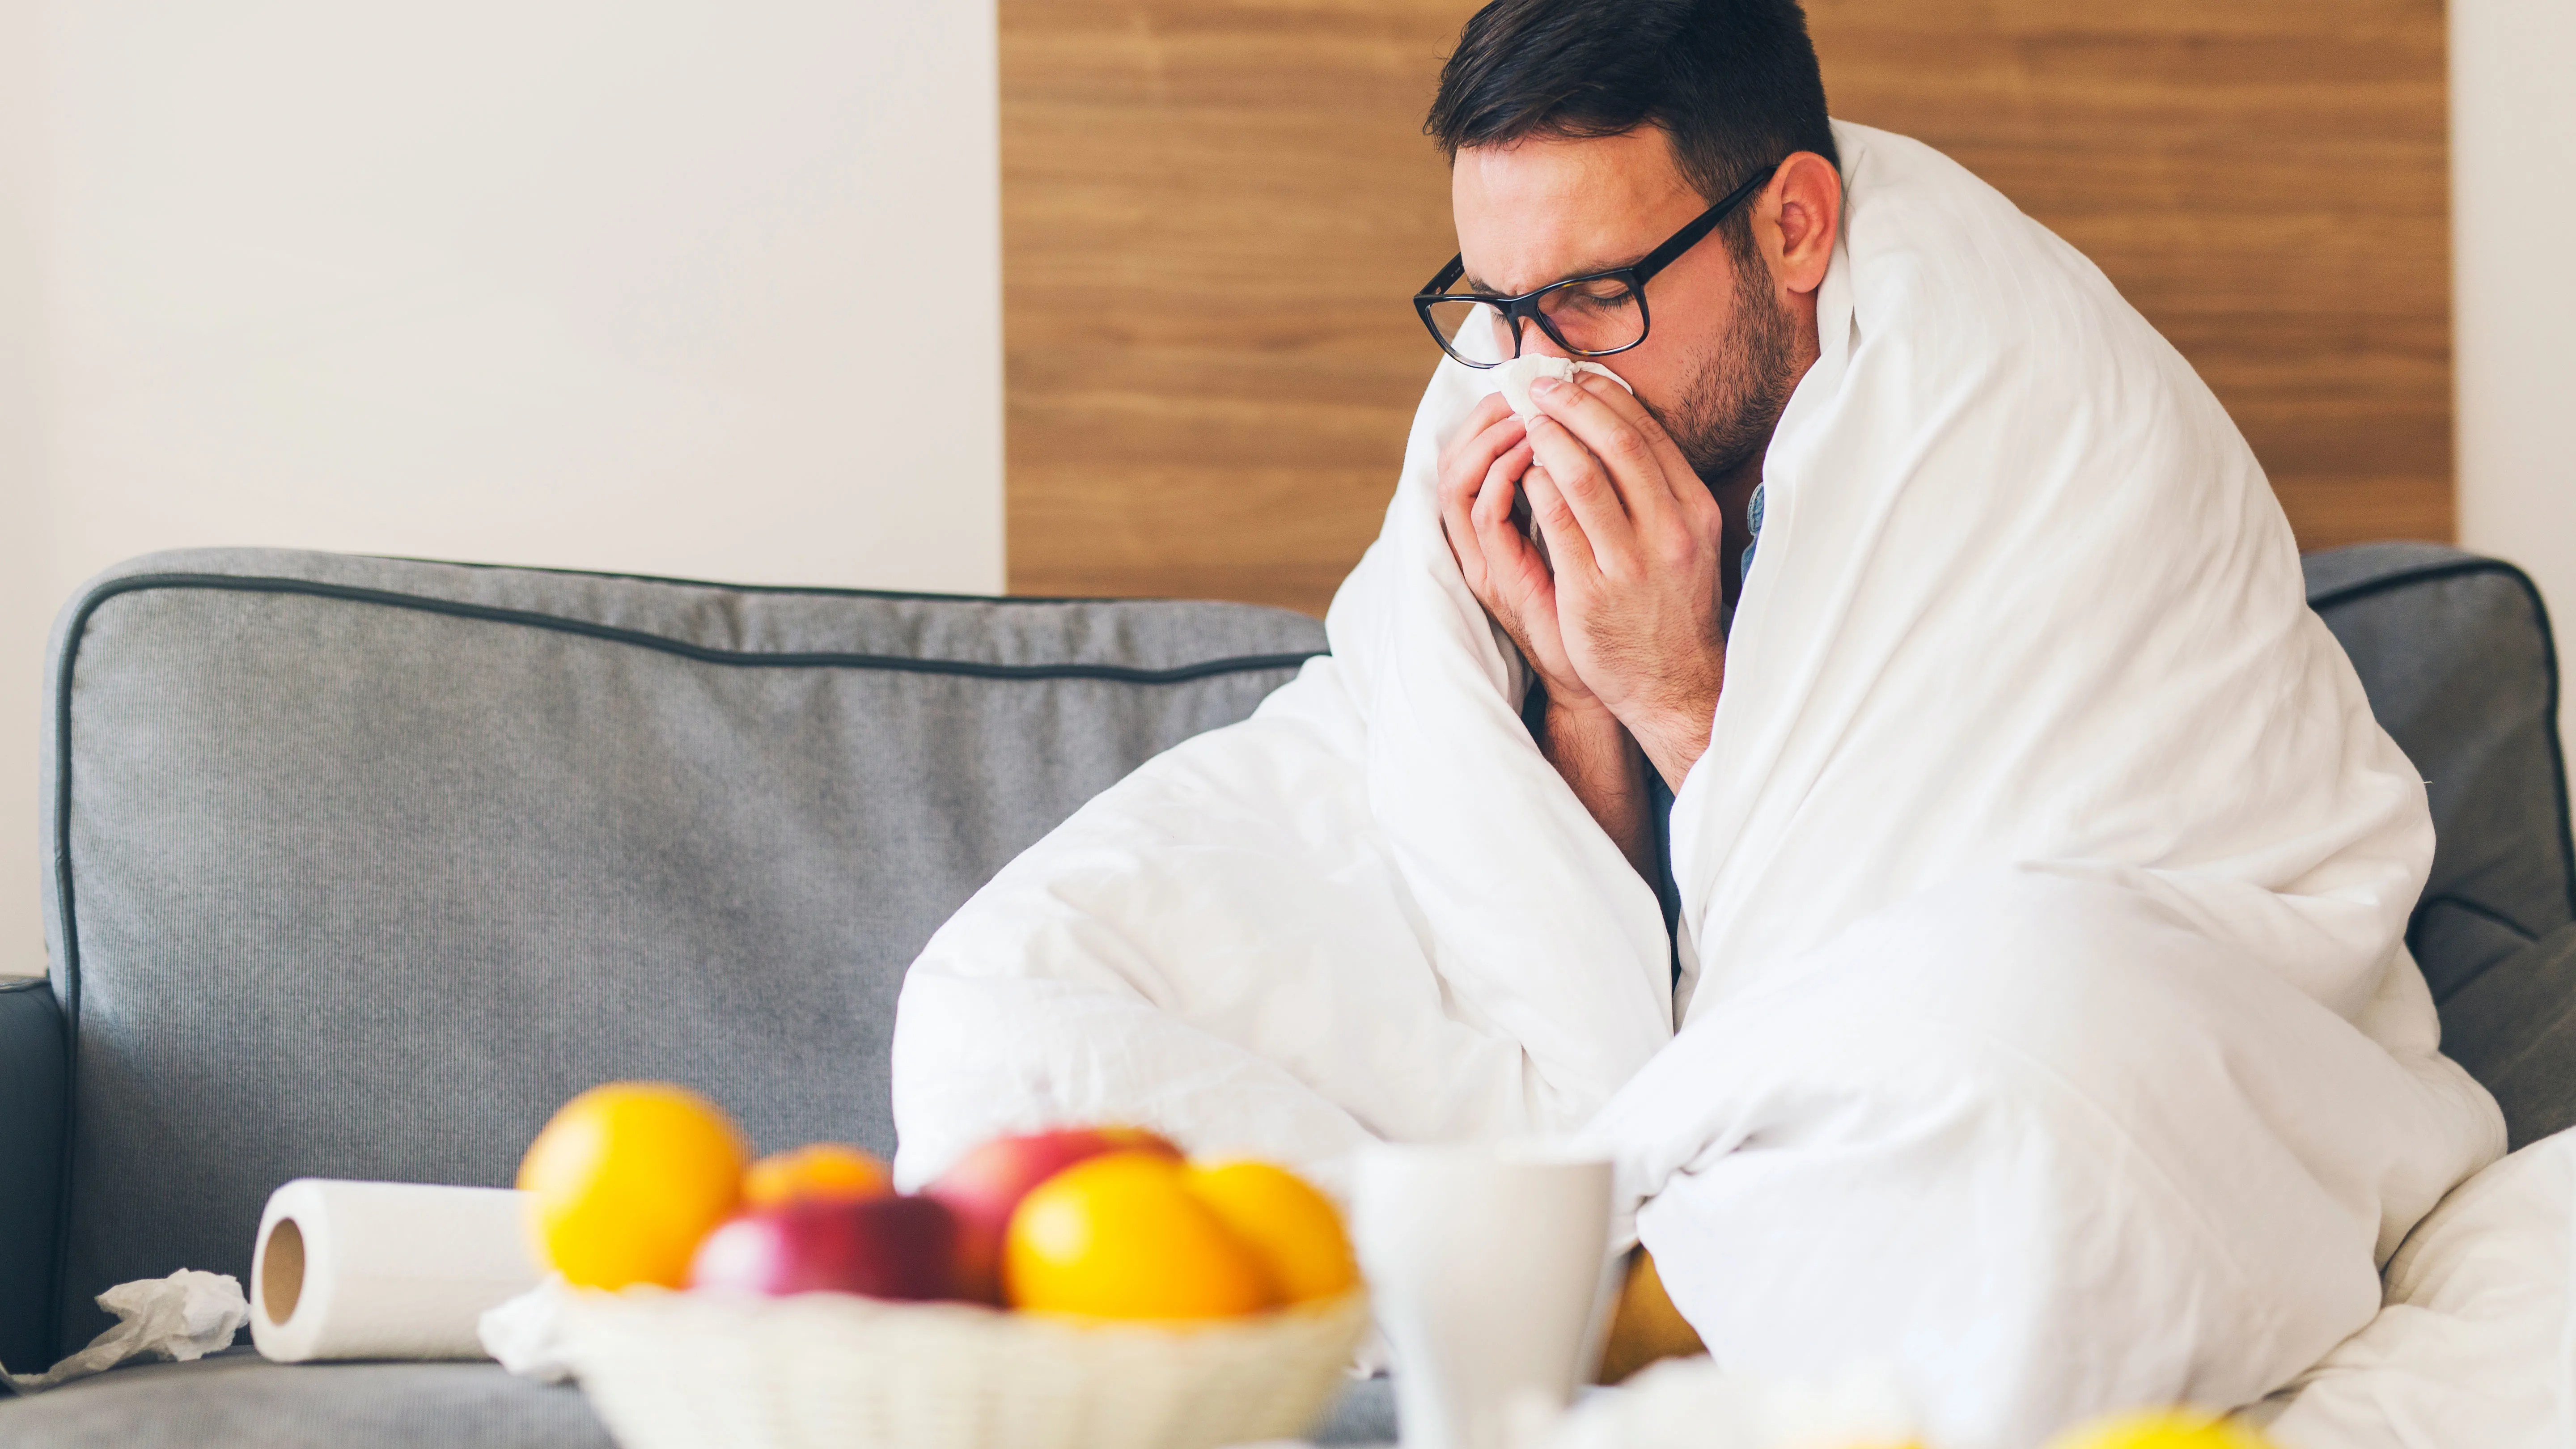 Could You Be in Danger of Serious Flu Complications? - Sharecare